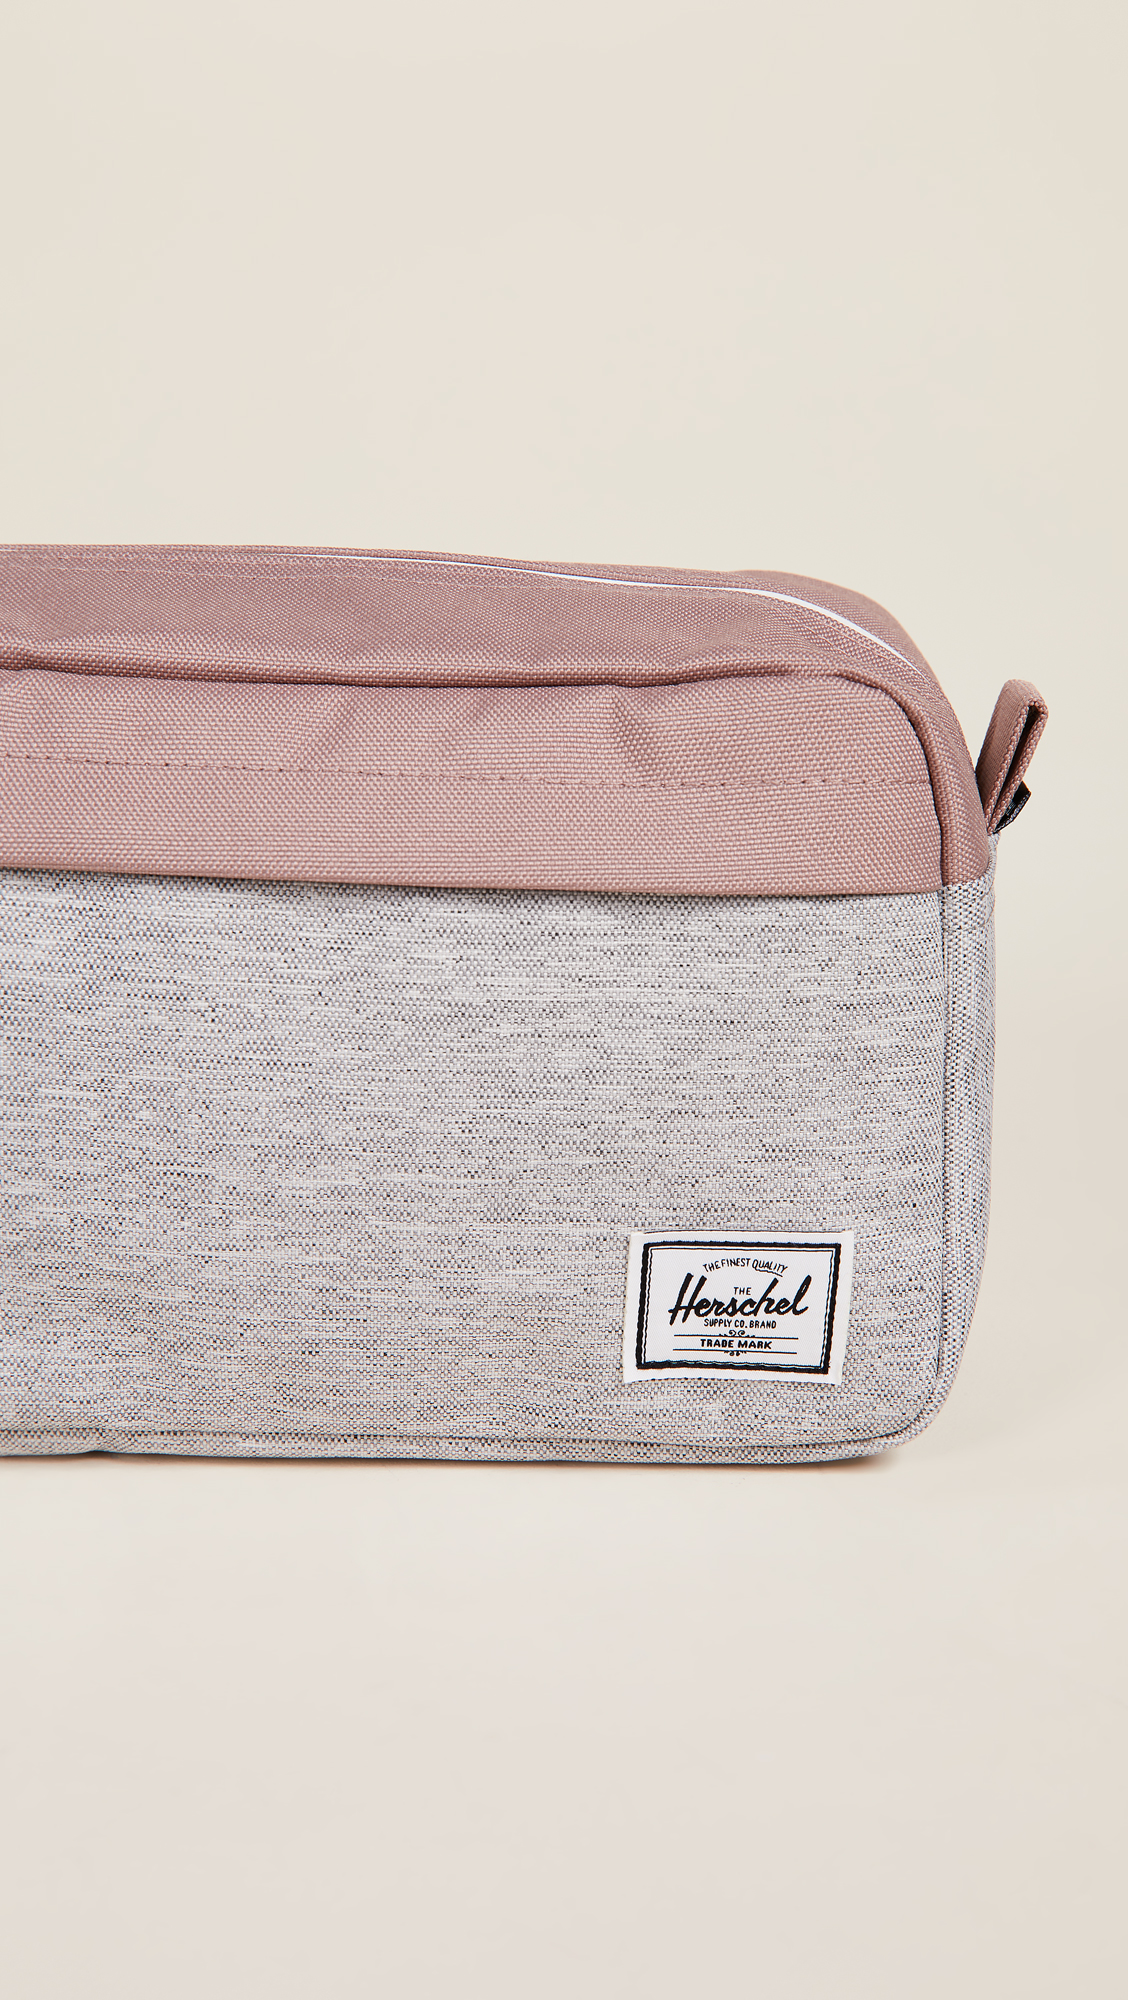 2014d10433a8 Herschel Supply Co. Chapter Cosmetic Bag